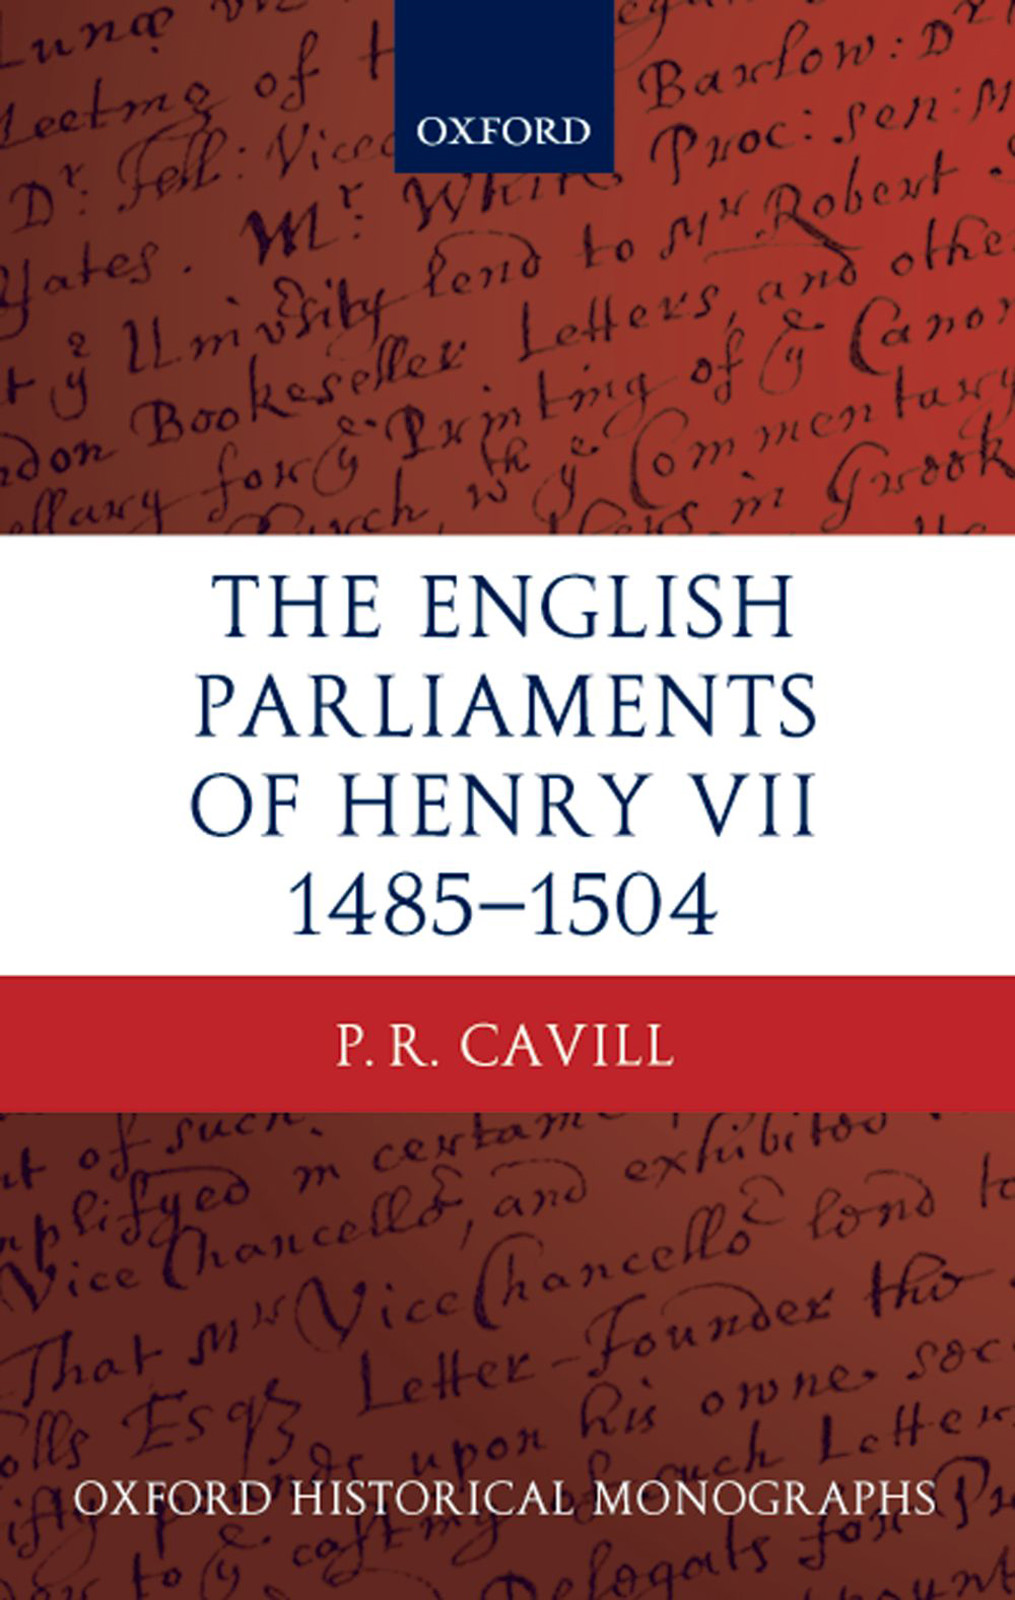 The English Parliaments of Henry VII 1485-1504 By: P.R. Cavill